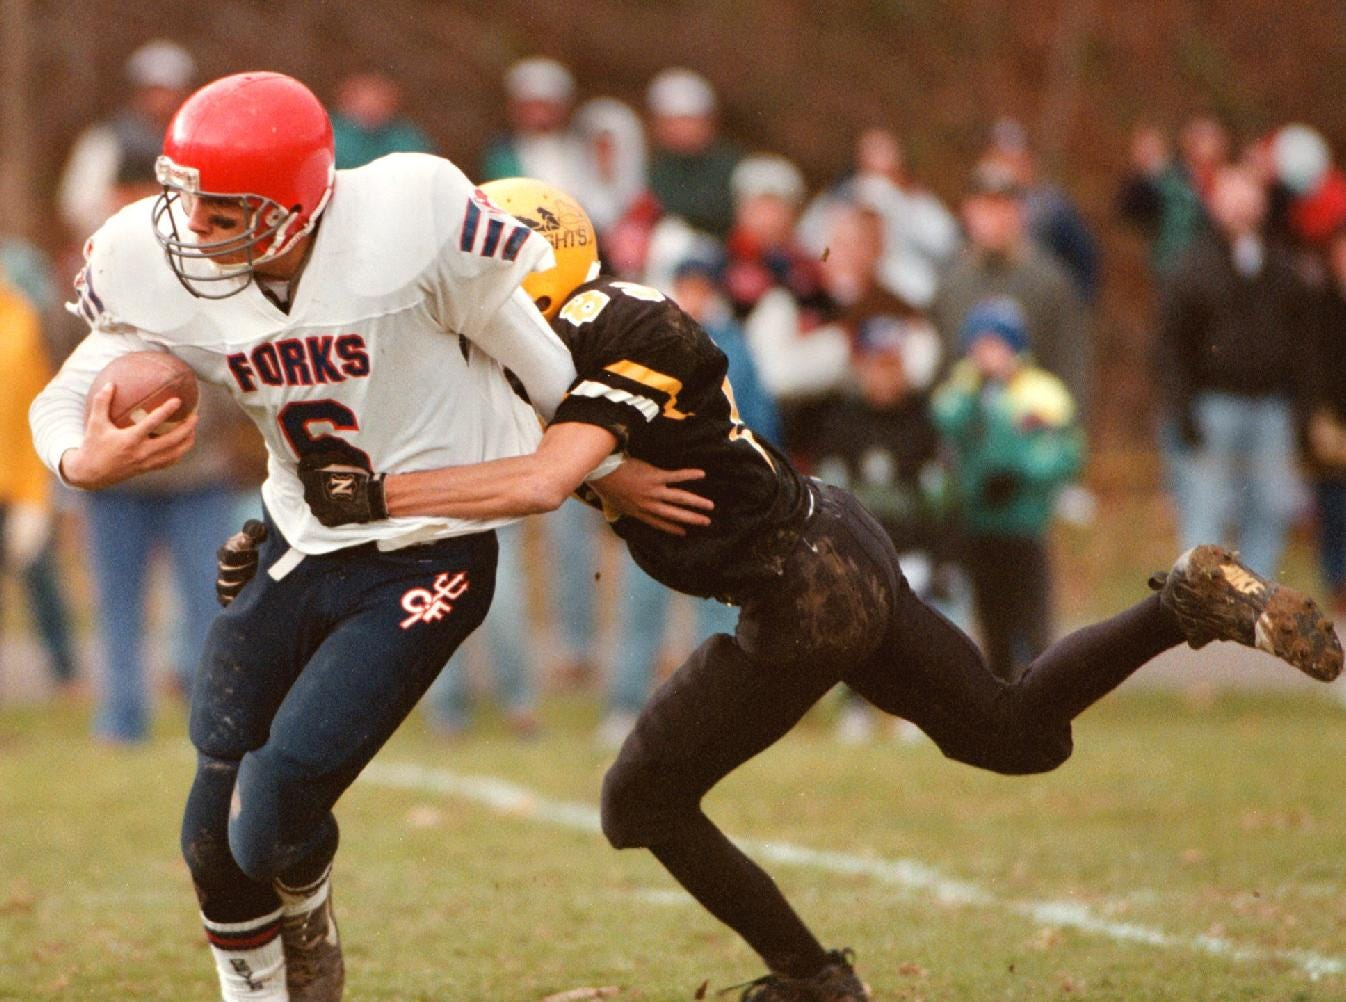 From 1996: Chenango Forks quarterback Rob Markert is taken down by Windsor's Andy Bartholomew in the second quarter of Saturday's Section IV Class B football semi-final game at Windsor.